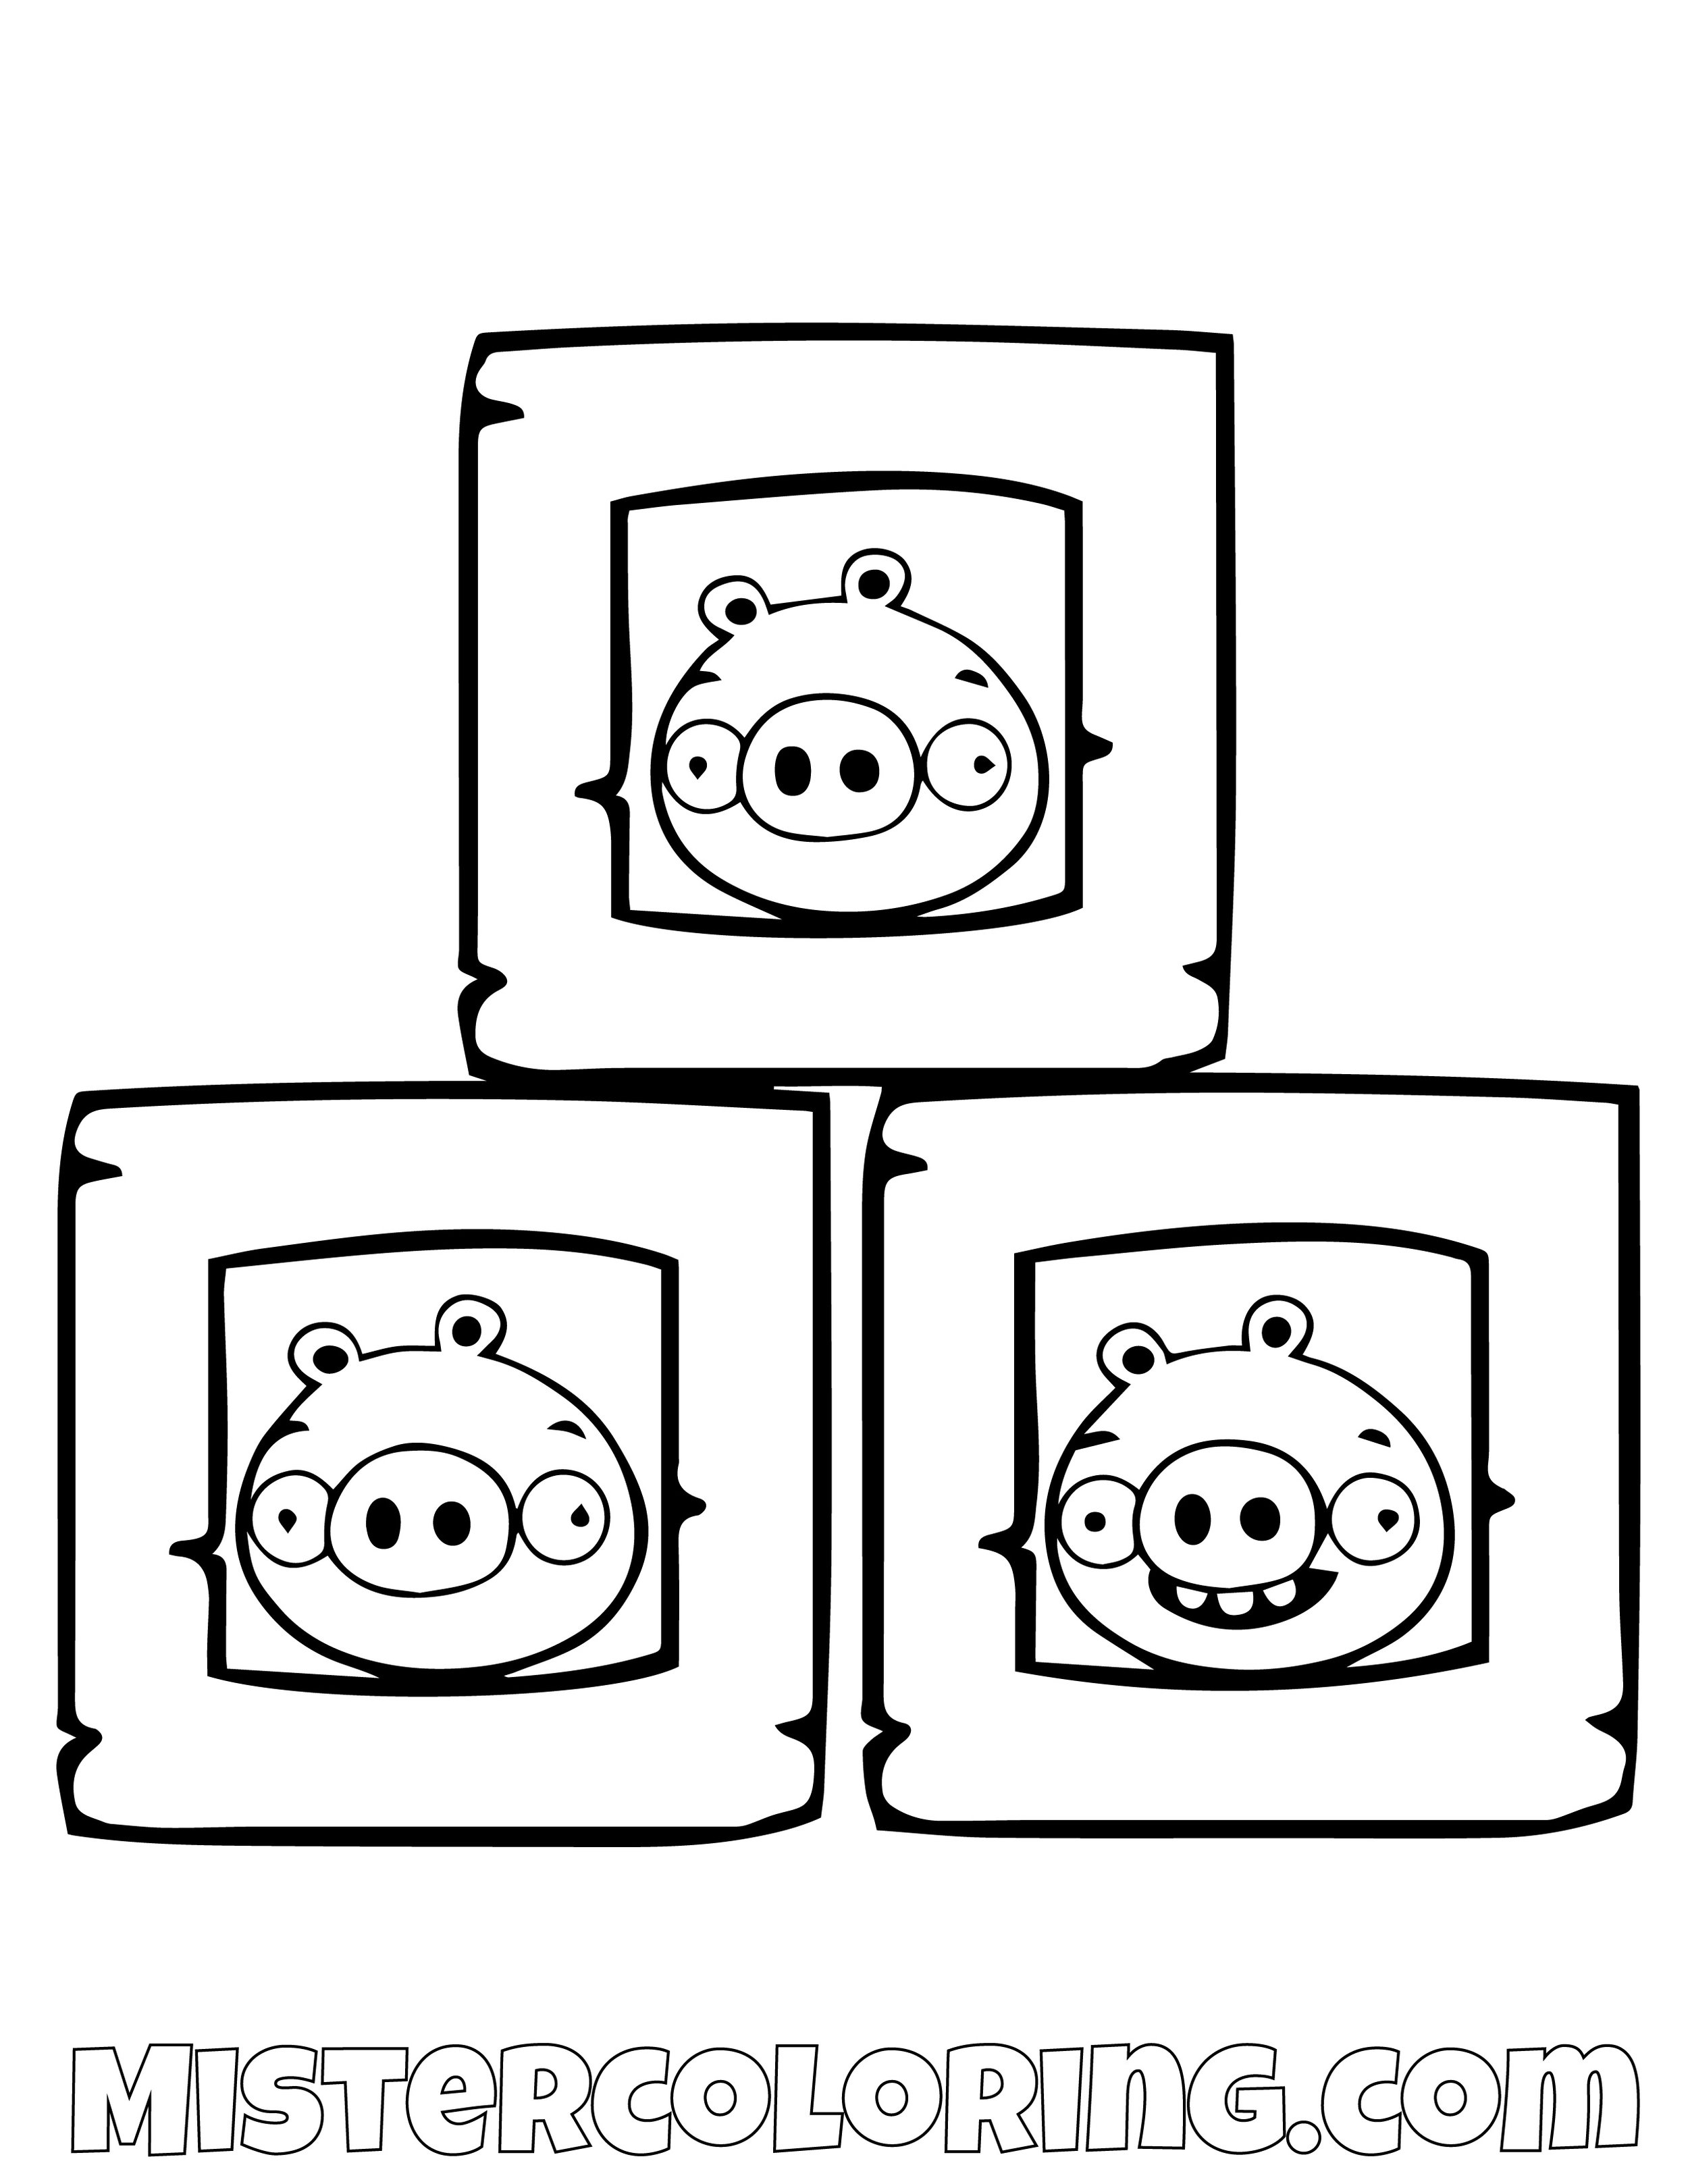 Pigs In A Box Angry Bird Coloring Pages